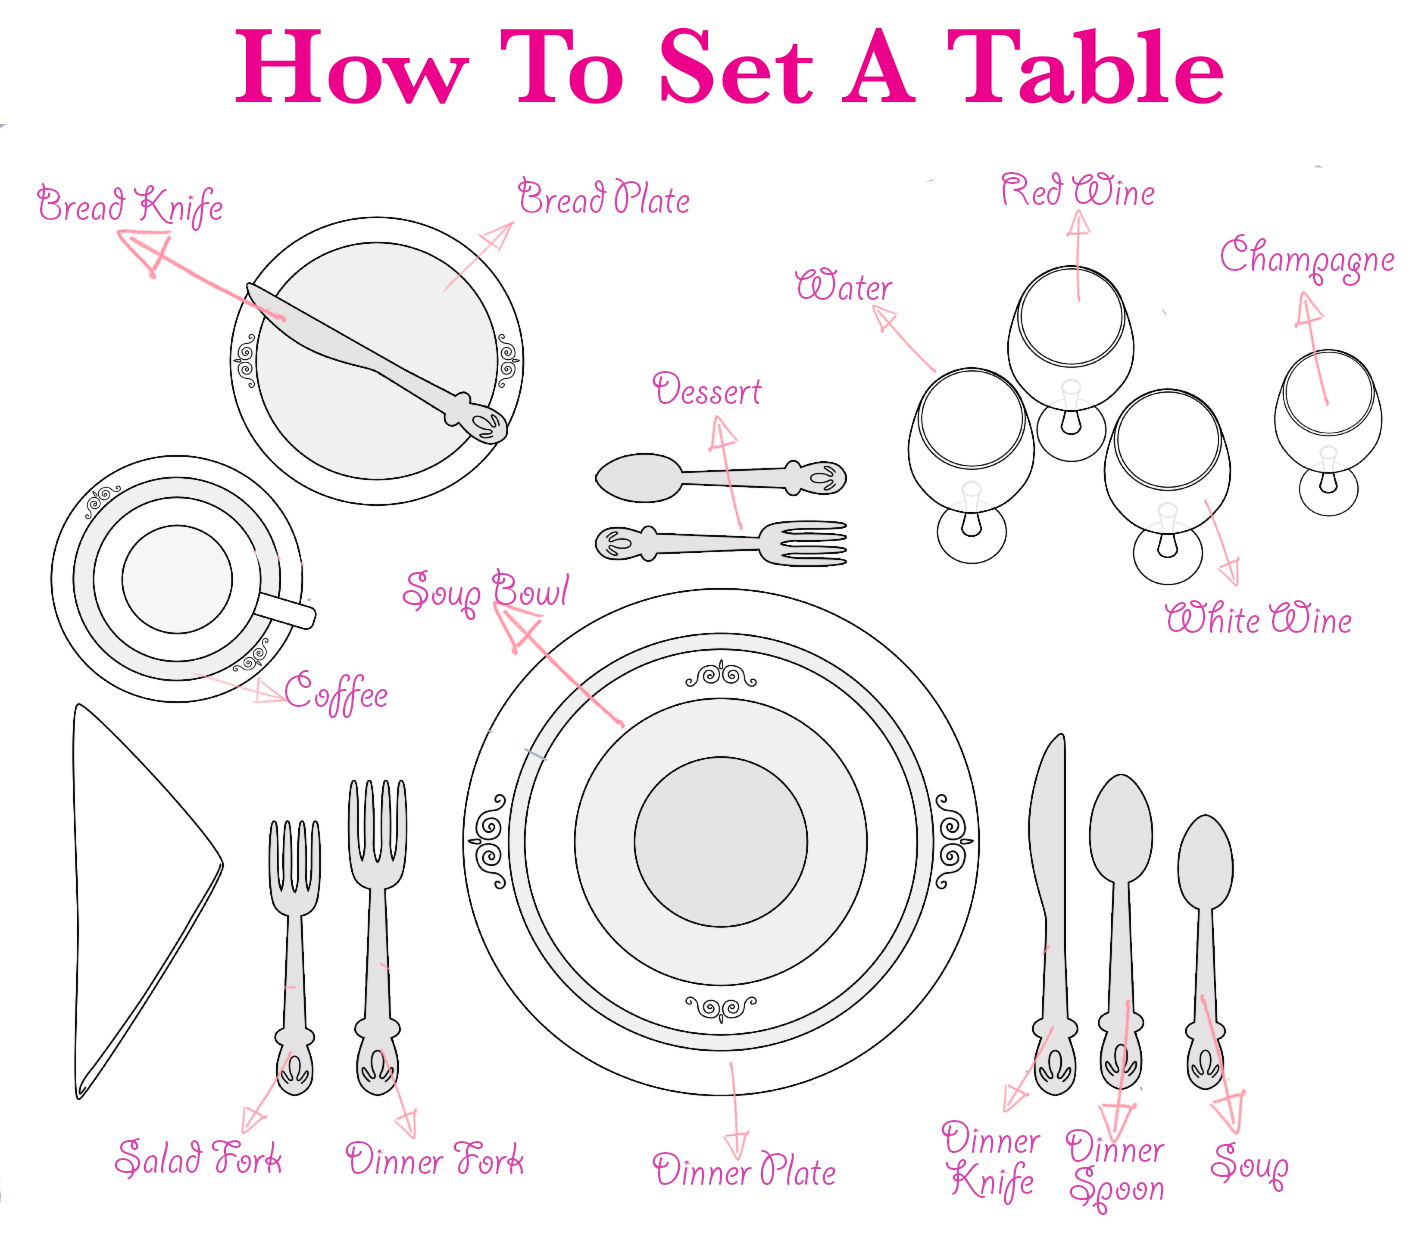 how to set a table setting ideas inspiration pinterest dinner formal shop room ideas forks knives  sc 1 st  shoproomideas & 10 Gorgeous Table Setting Ideas + How To Set Your Table - shoproomideas